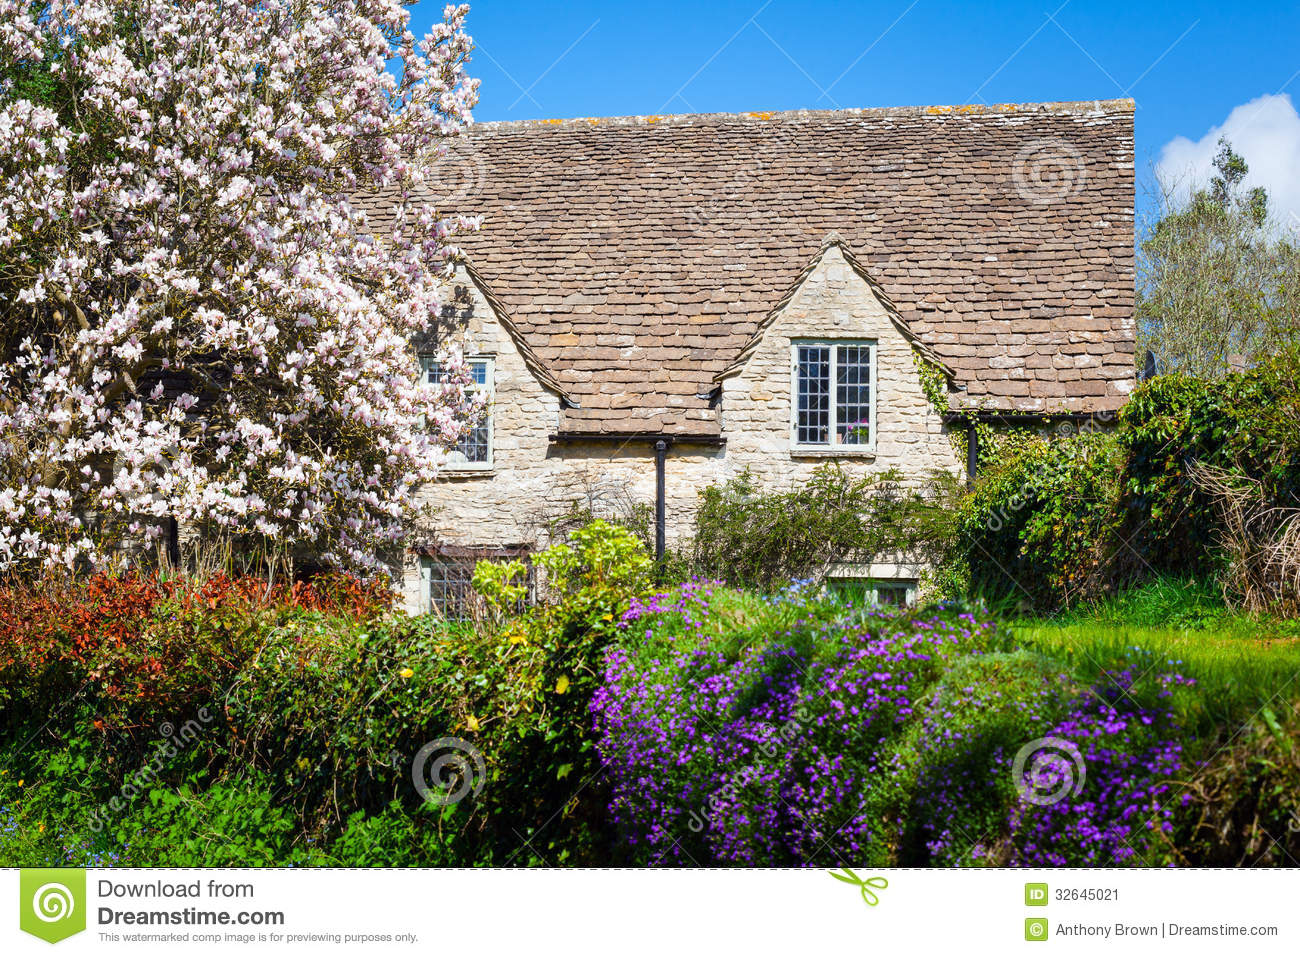 Quaint English Country Cottage Stock Image - Image: 32645021 Quaint English Cottages